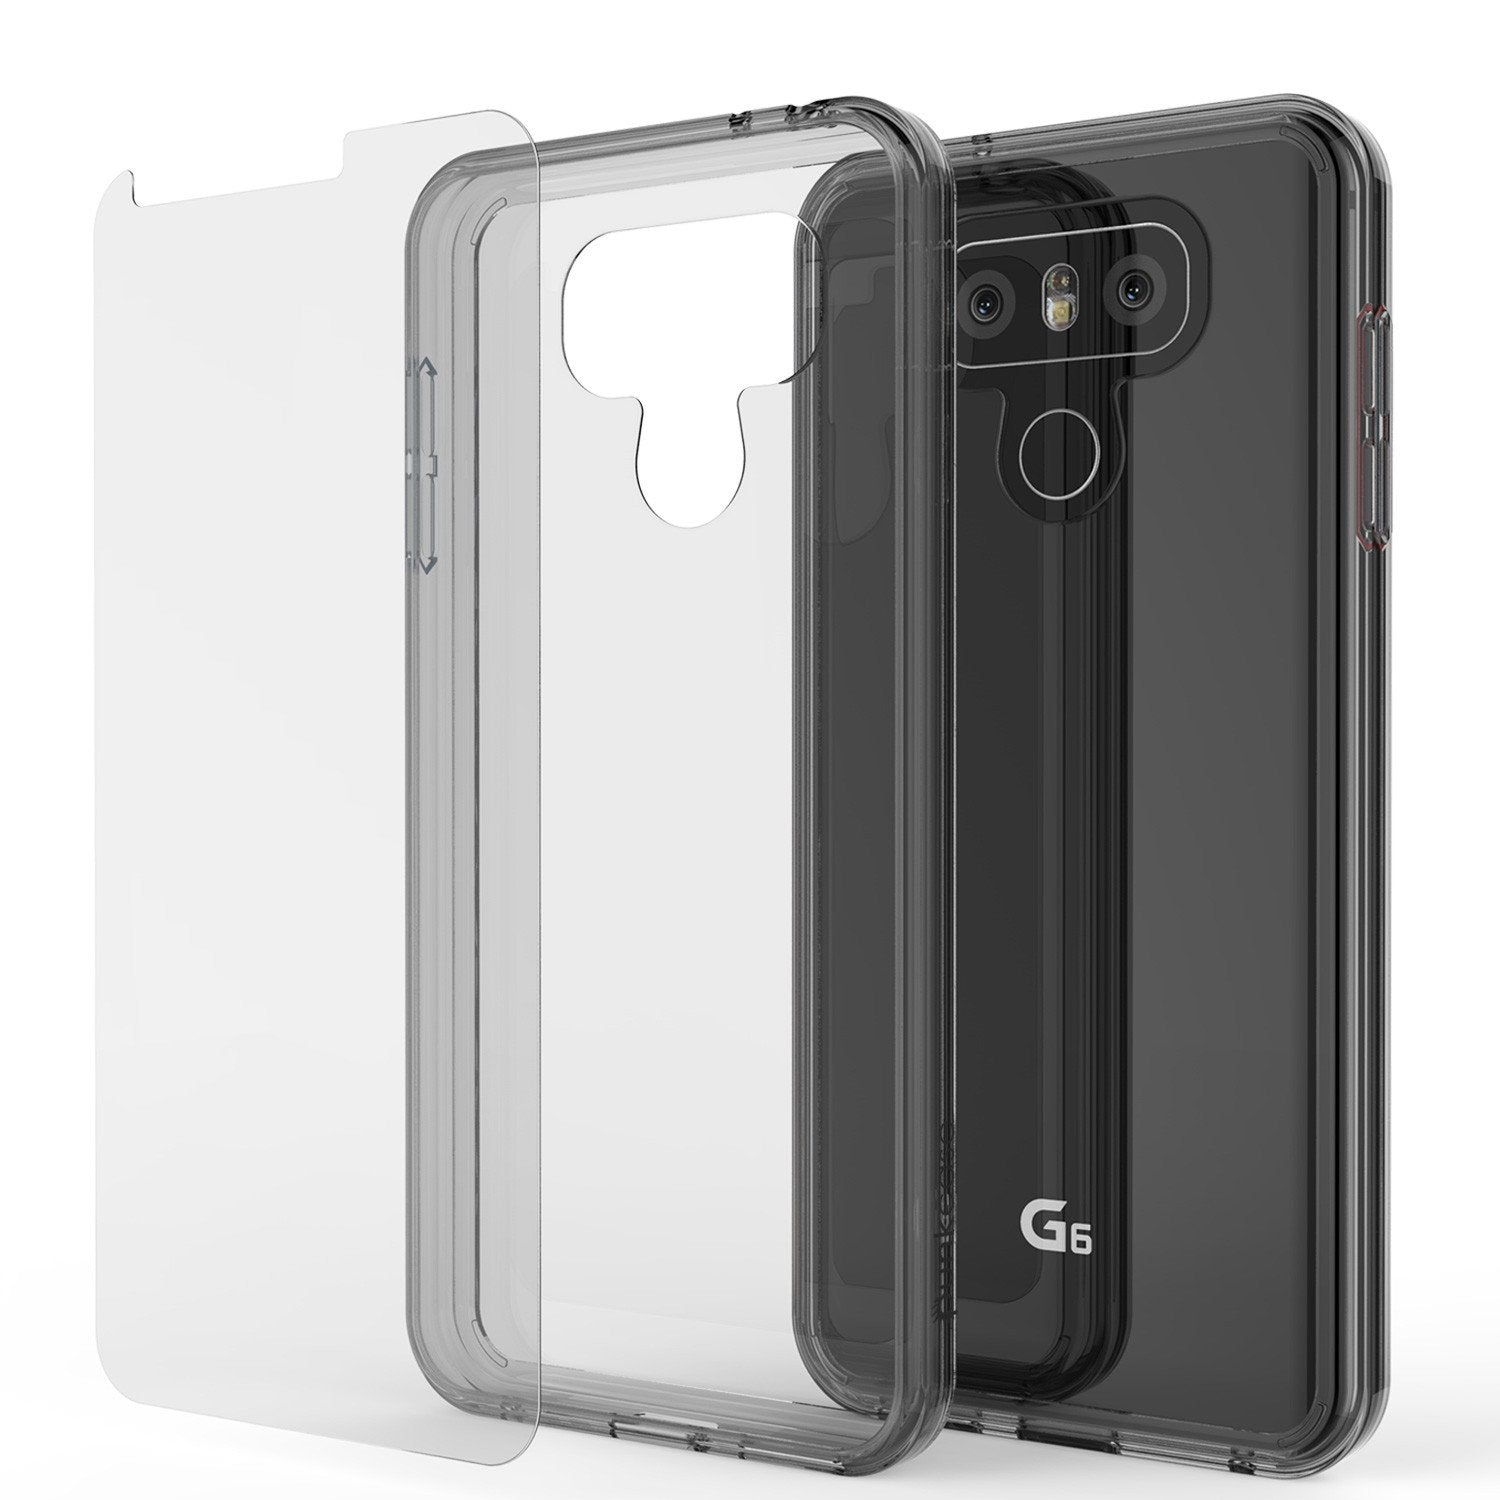 LG G6 Case Punkcase® LUCID 2.0 Crystal Black Series w/ PUNK SHIELD Screen Protector | Ultra Fit - PunkCase NZ